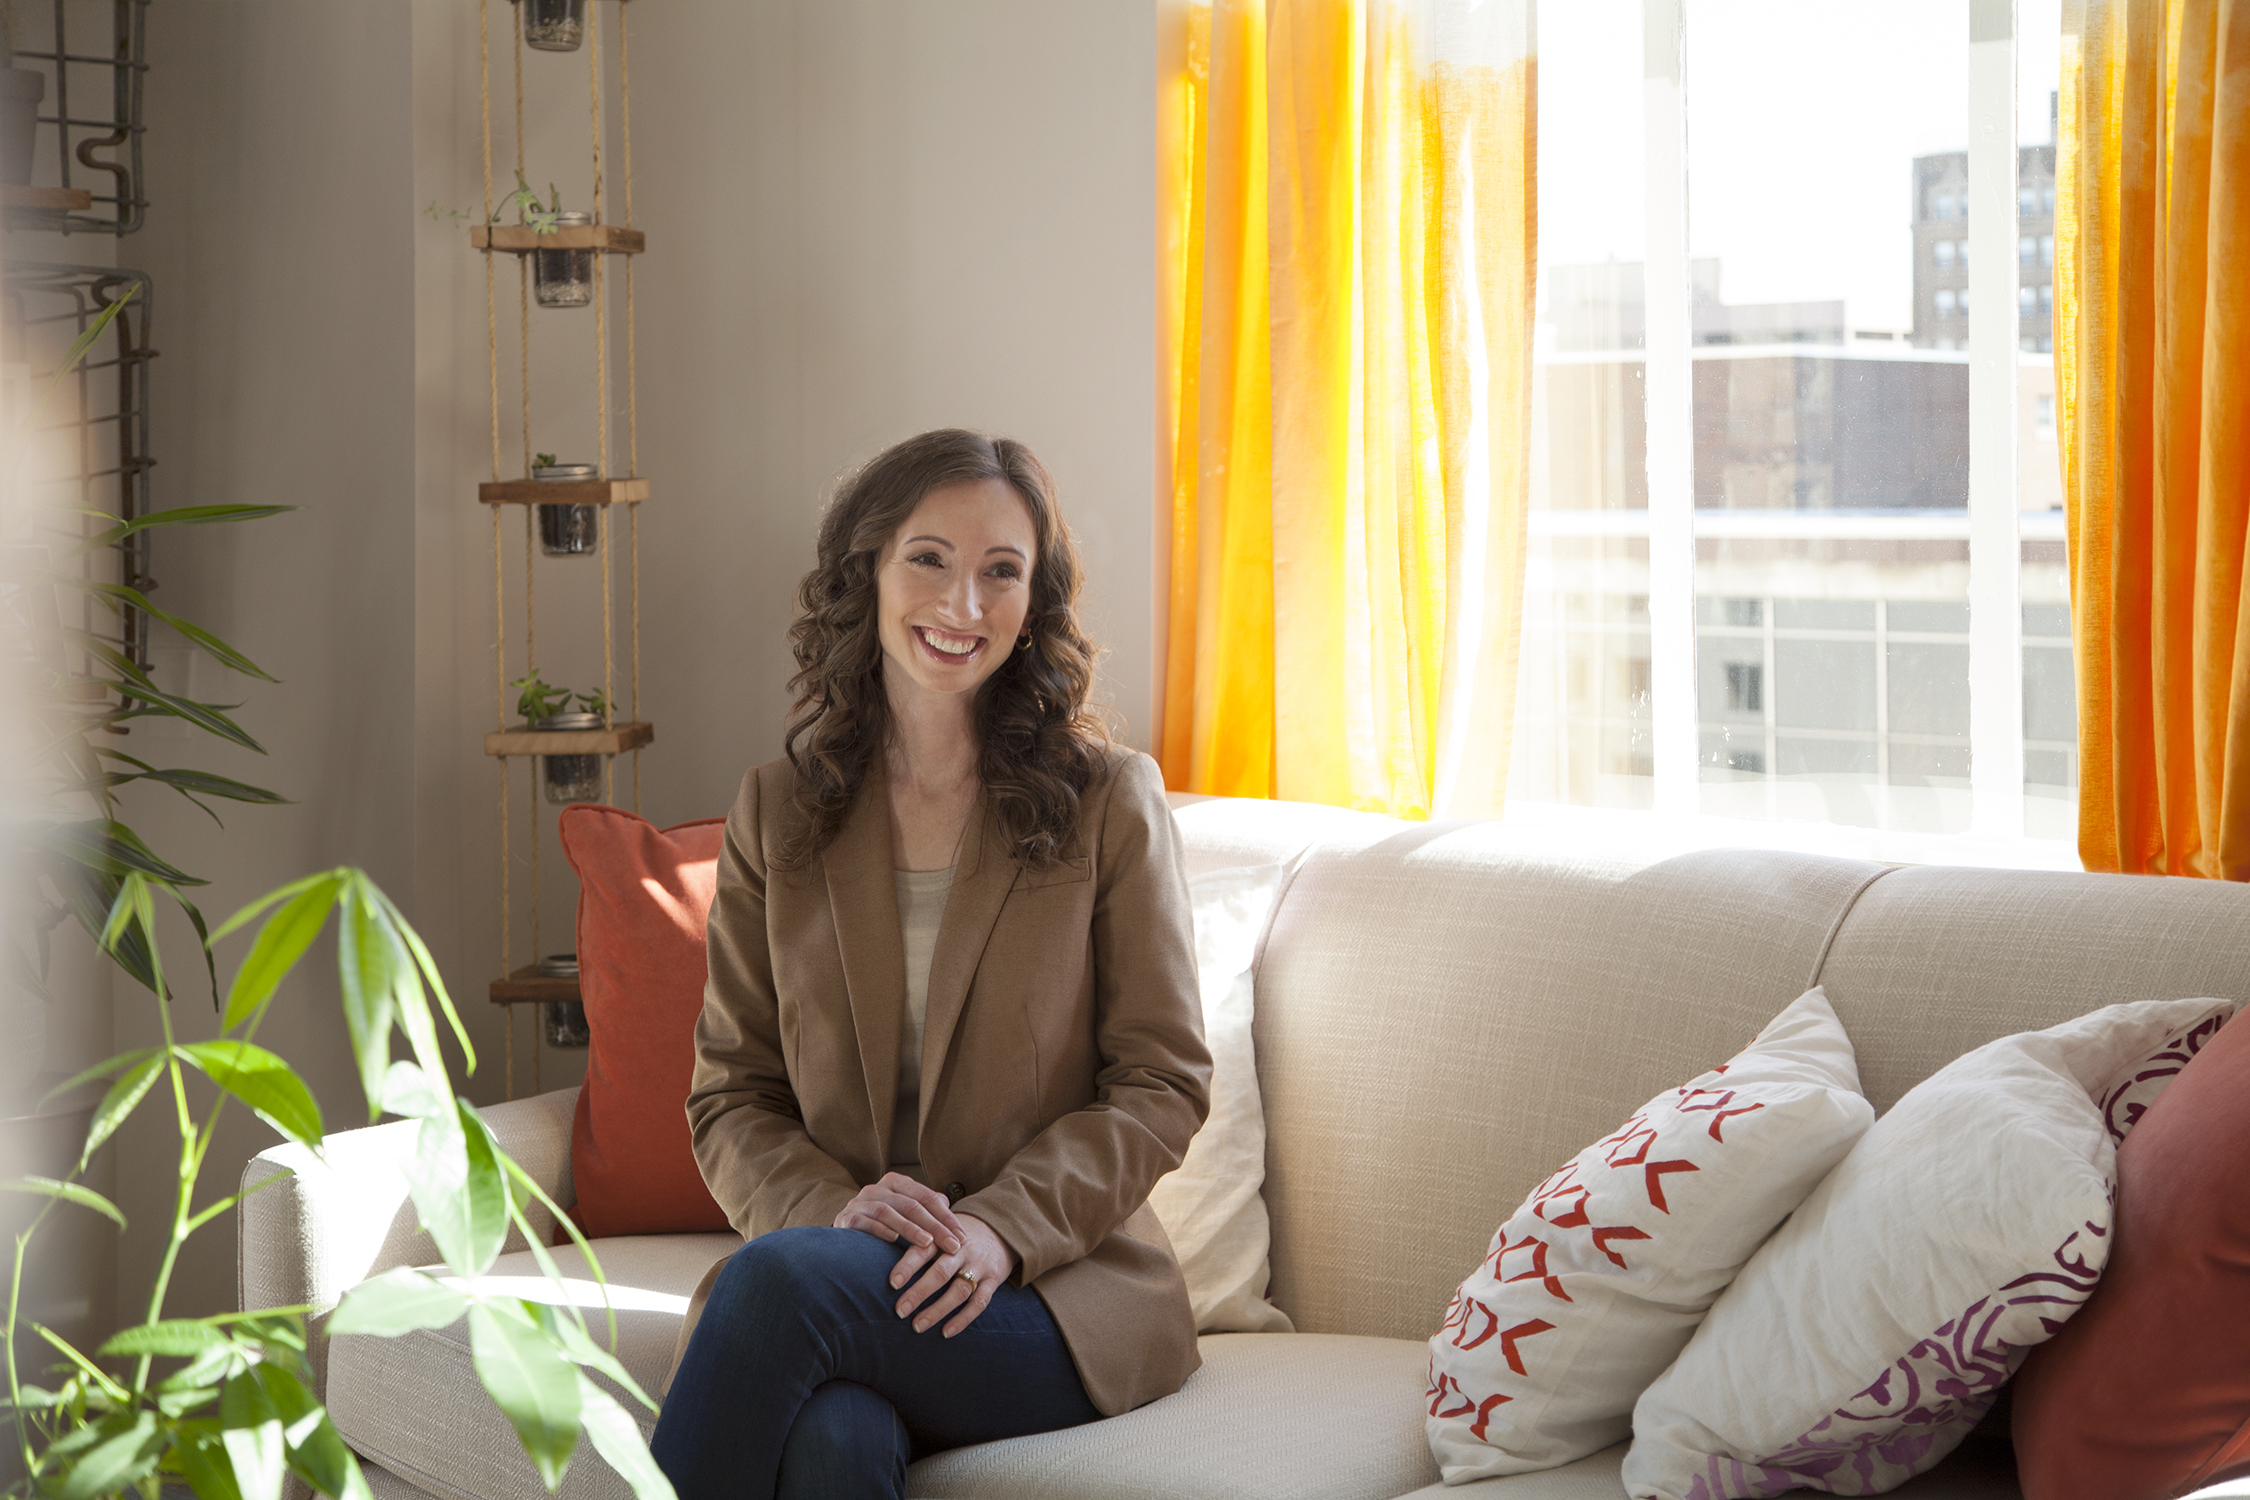 woman on couch, bright office, Sarah Tomes, executive office